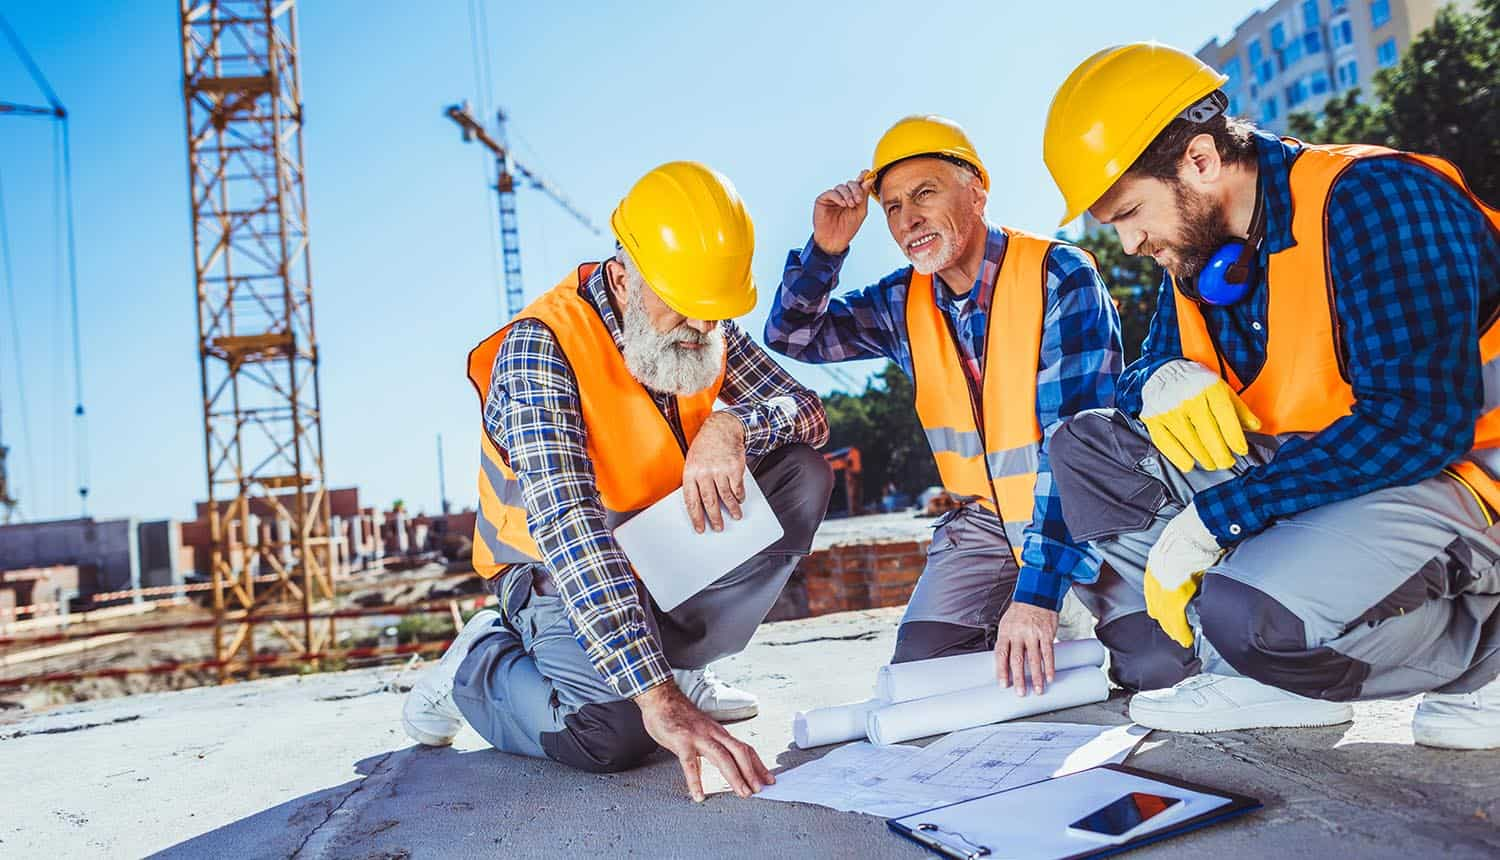 Three construction workers sitting on concrete at construction site